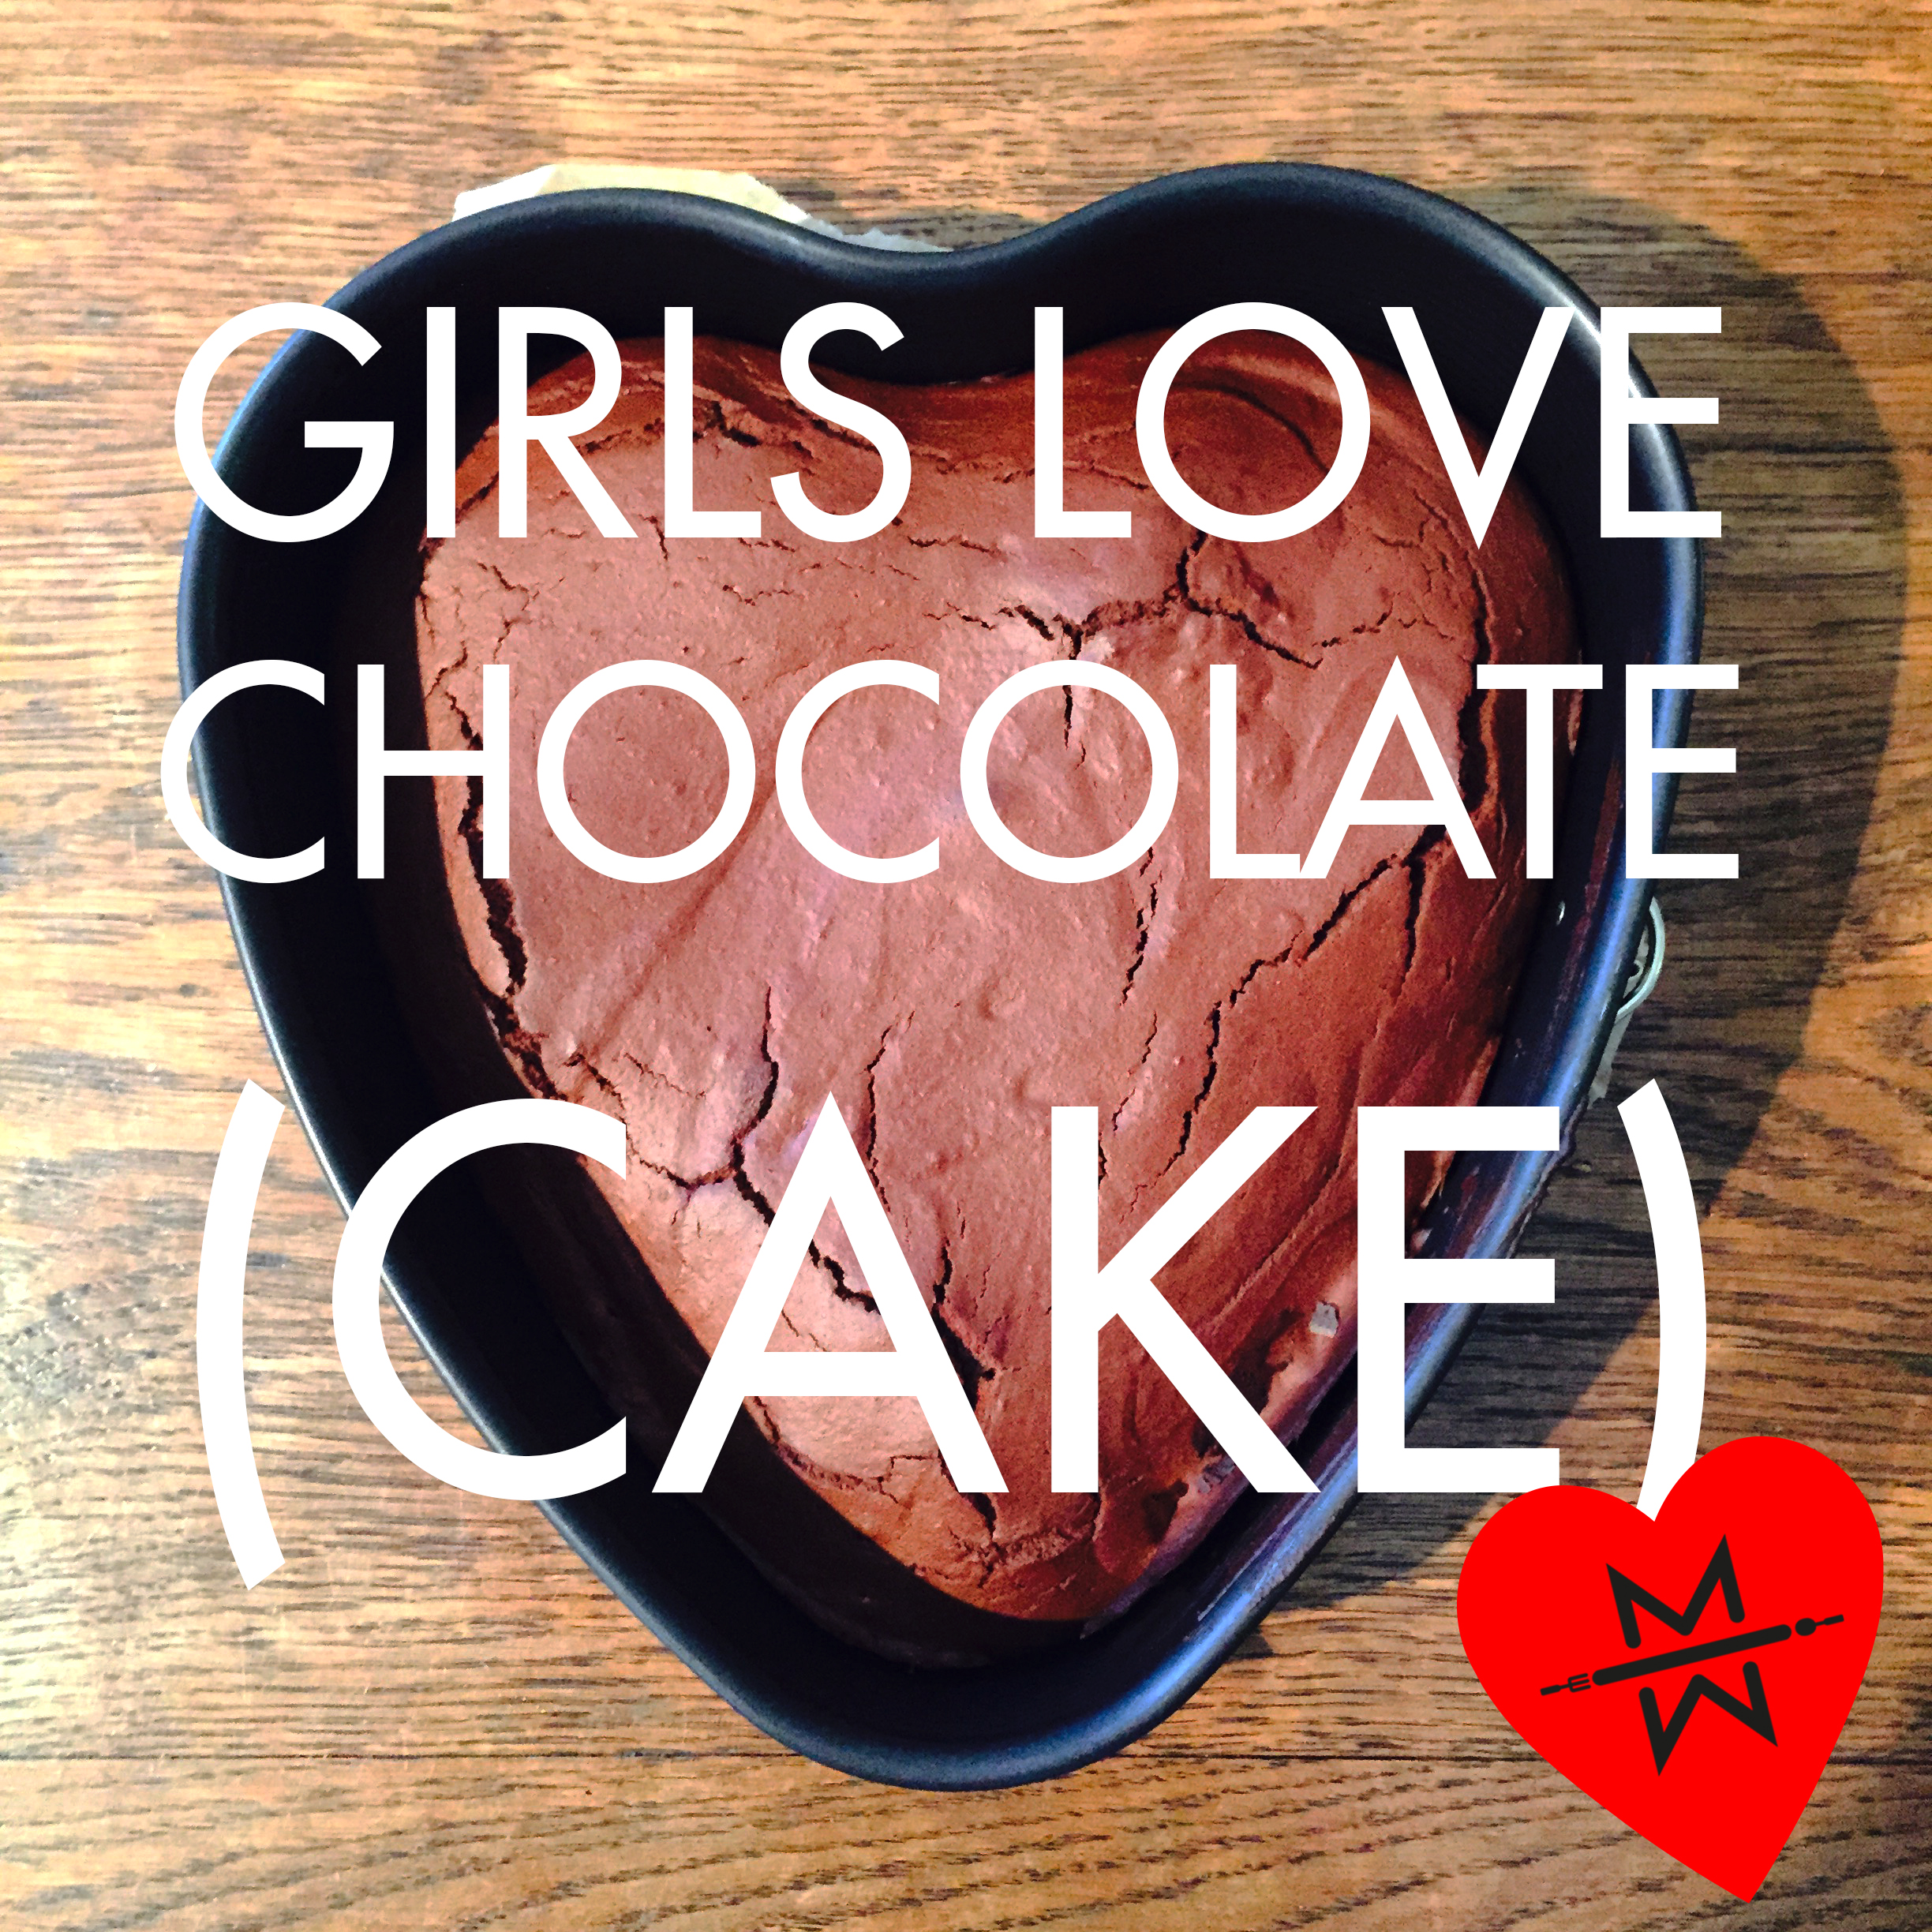 Girls love chocolate (cake)!